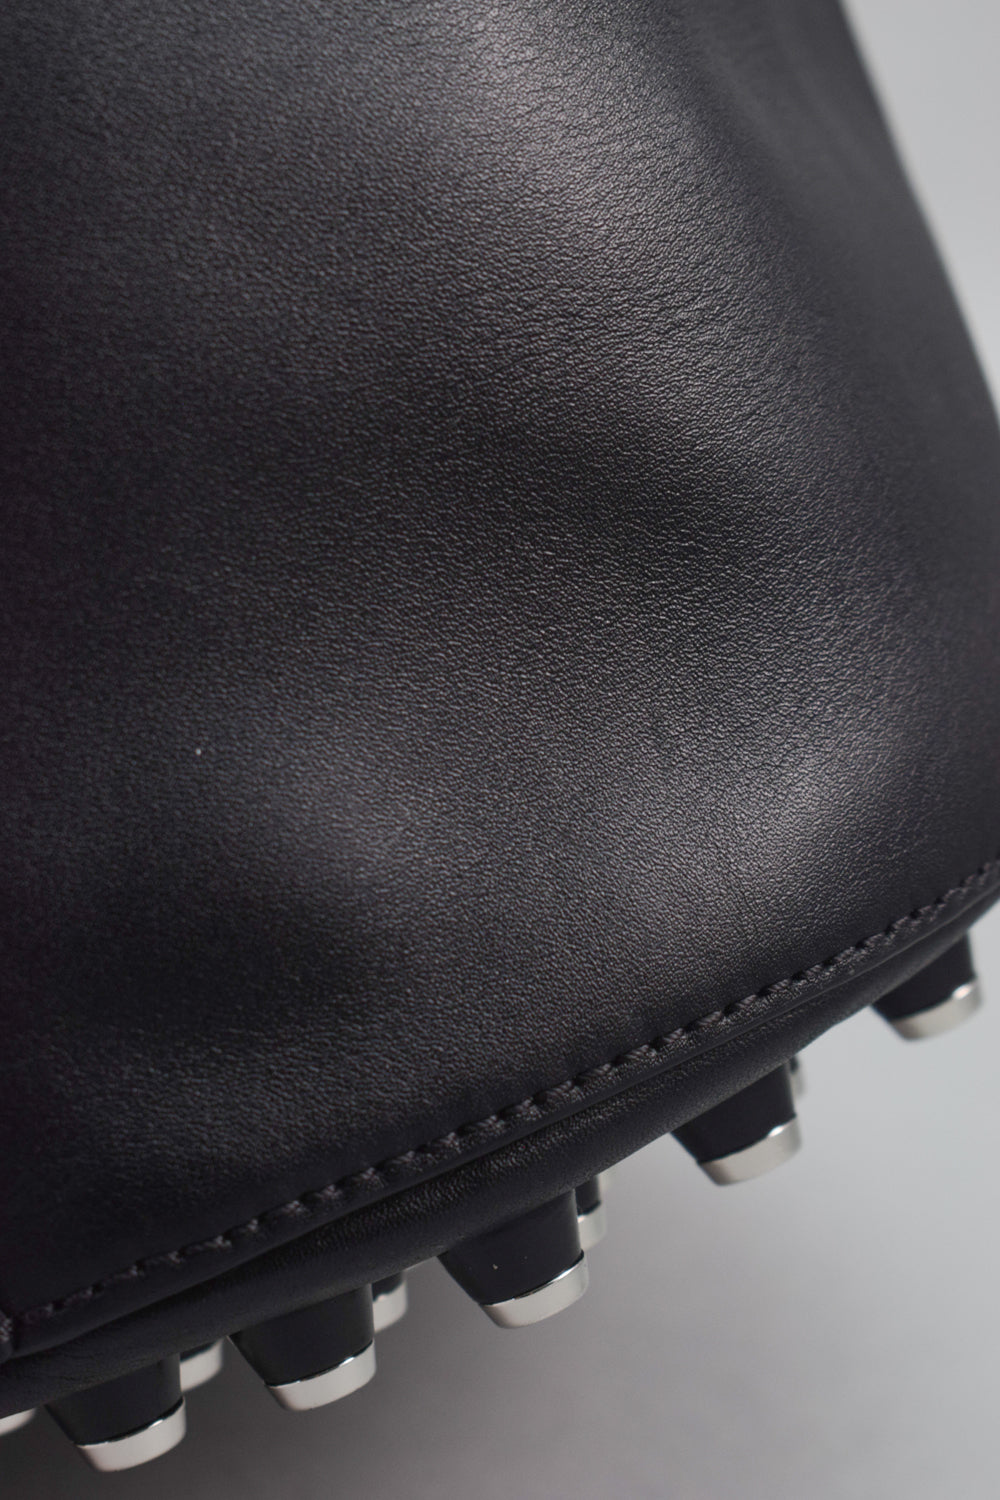 Alexander Wang Black Leather Alpha Bucket Bag